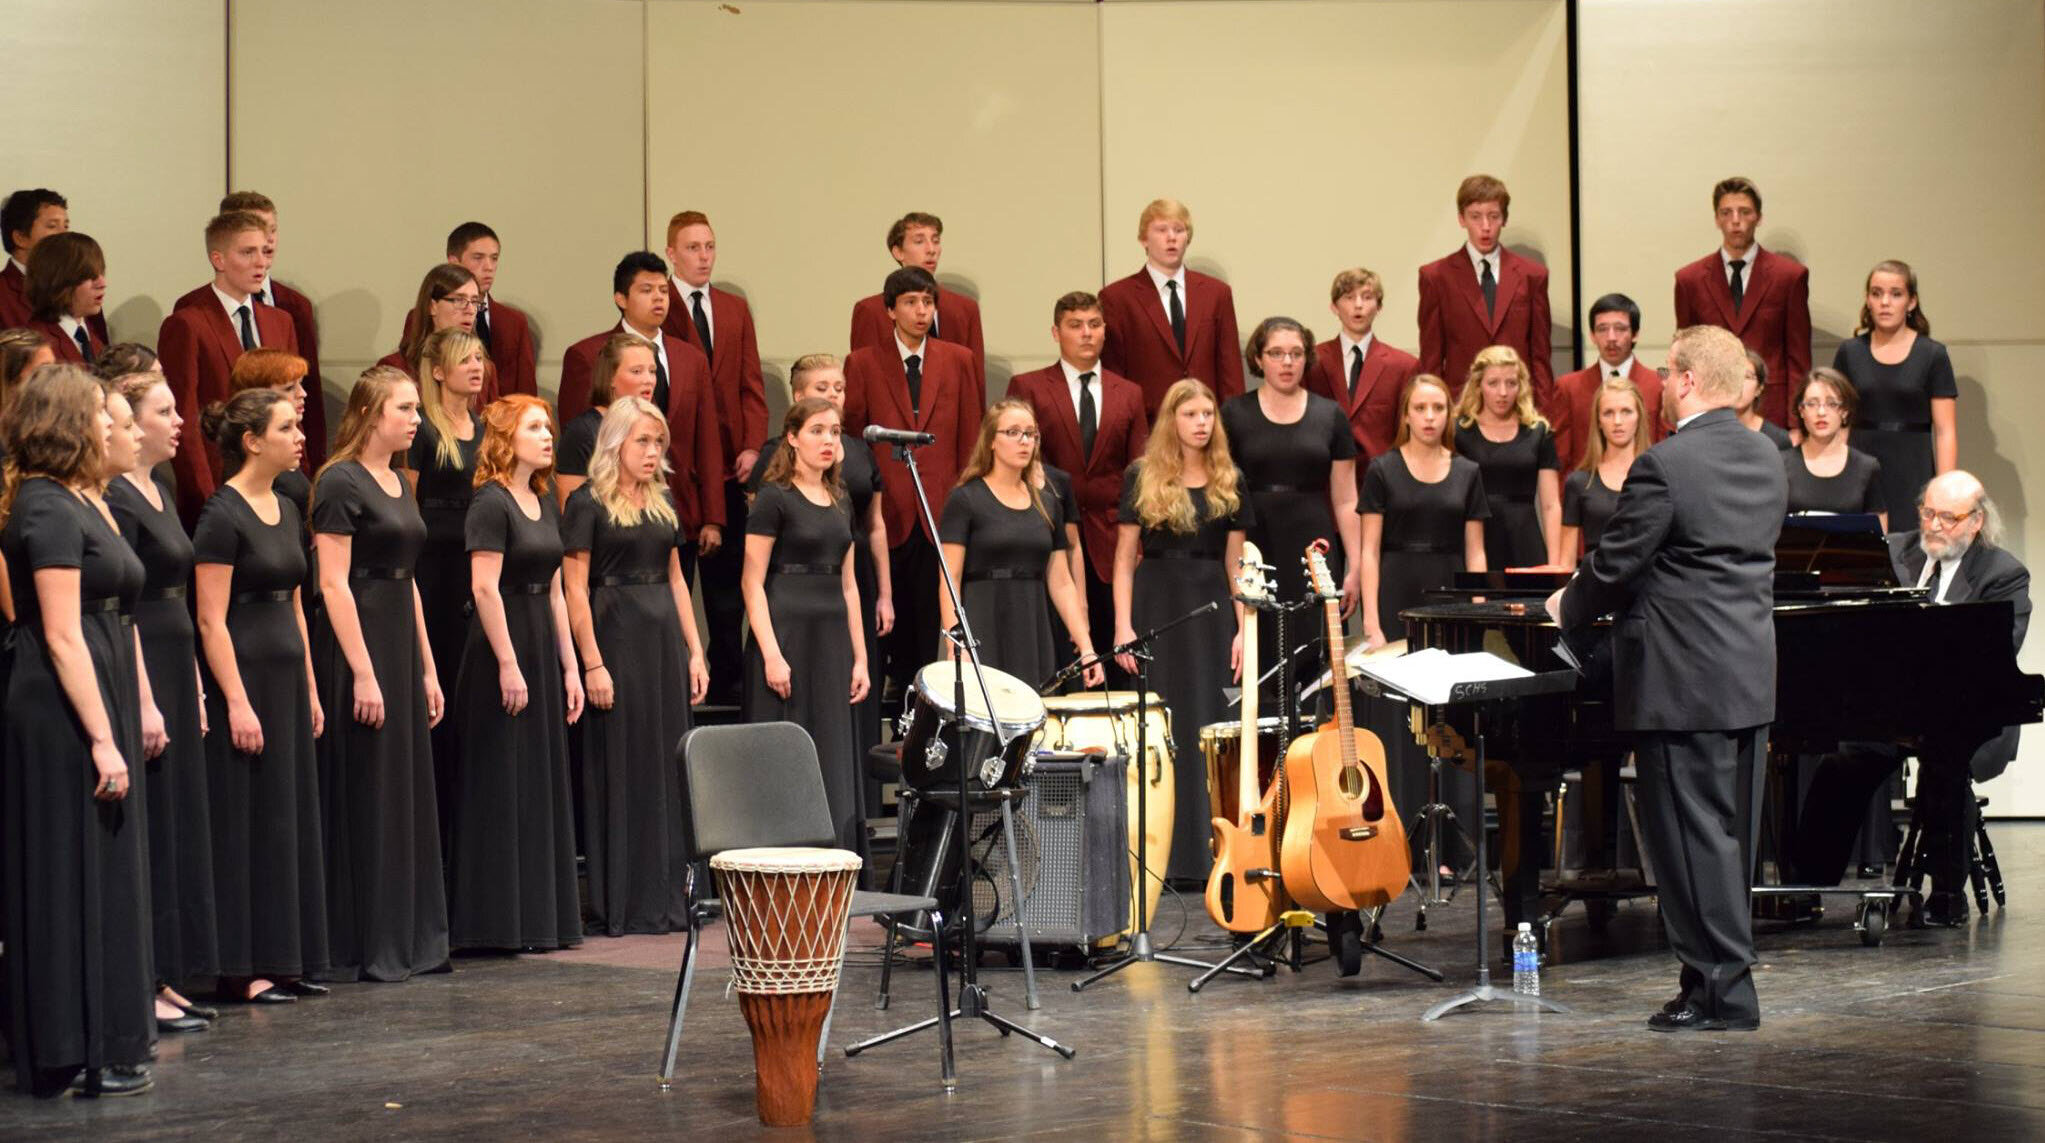 Take Action - CHOIRIncludes: Bella Voce, Cantore, Concert Choir Chamber Singers and Women's Ensemble